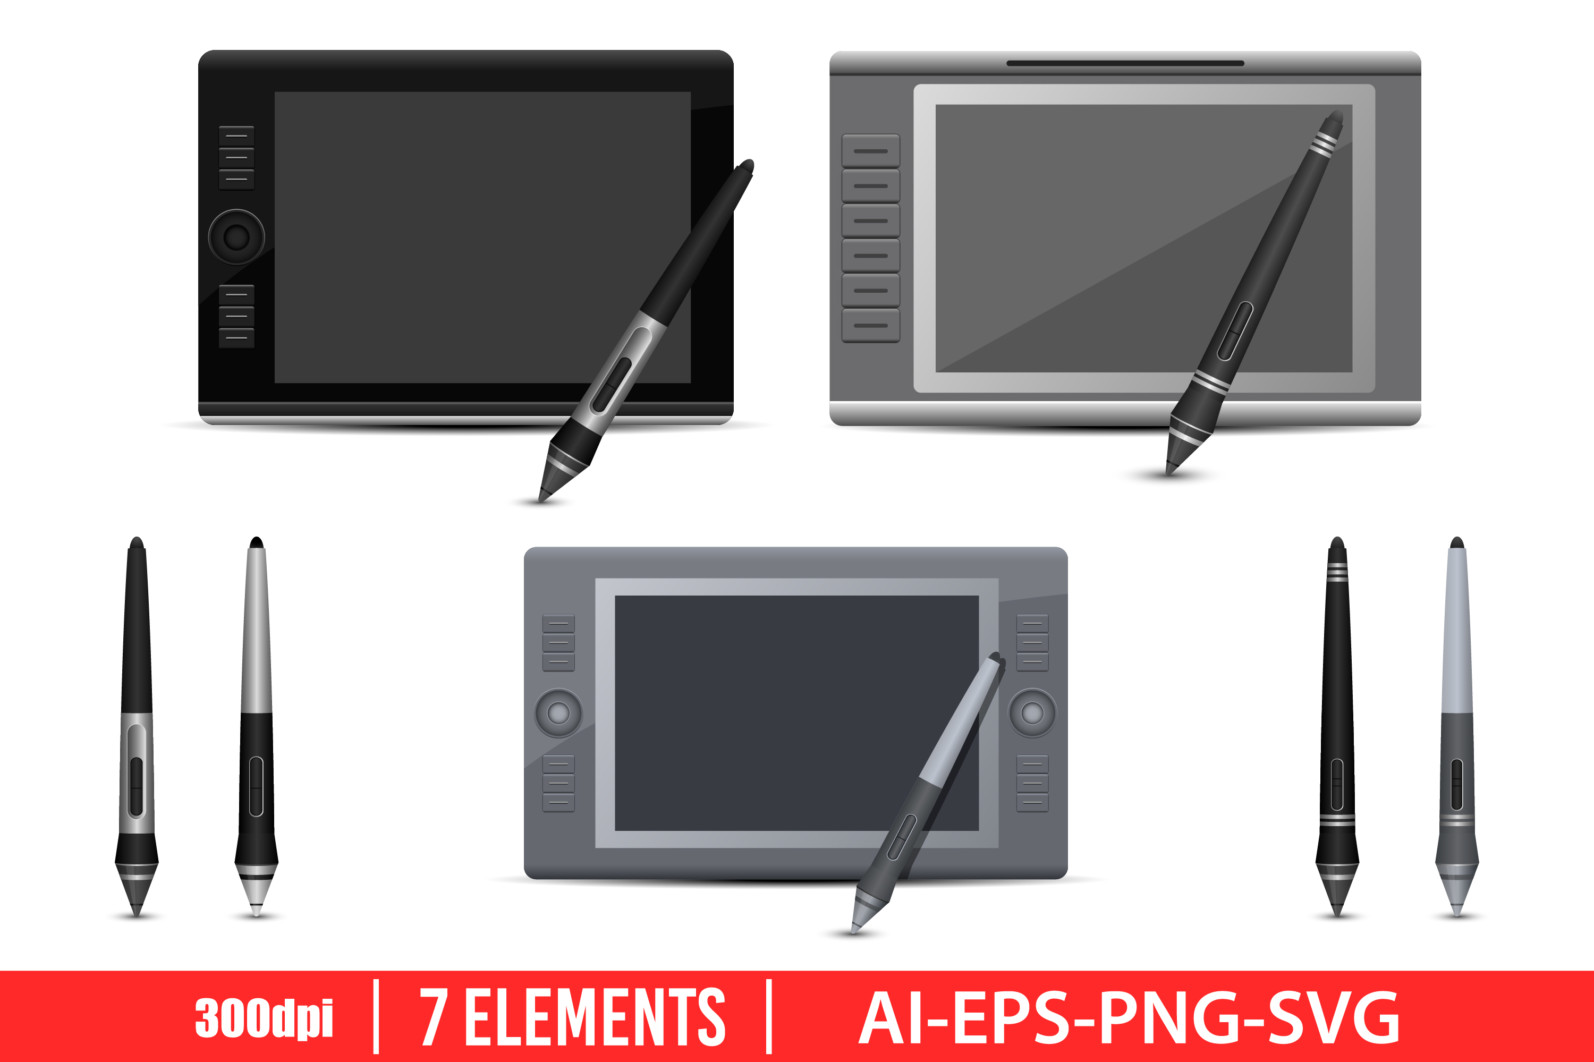 Graphic tablet clipart vector design illustration. Graphic tablet set. Vector Clipart Print - GRAPHIC TABLET scaled -